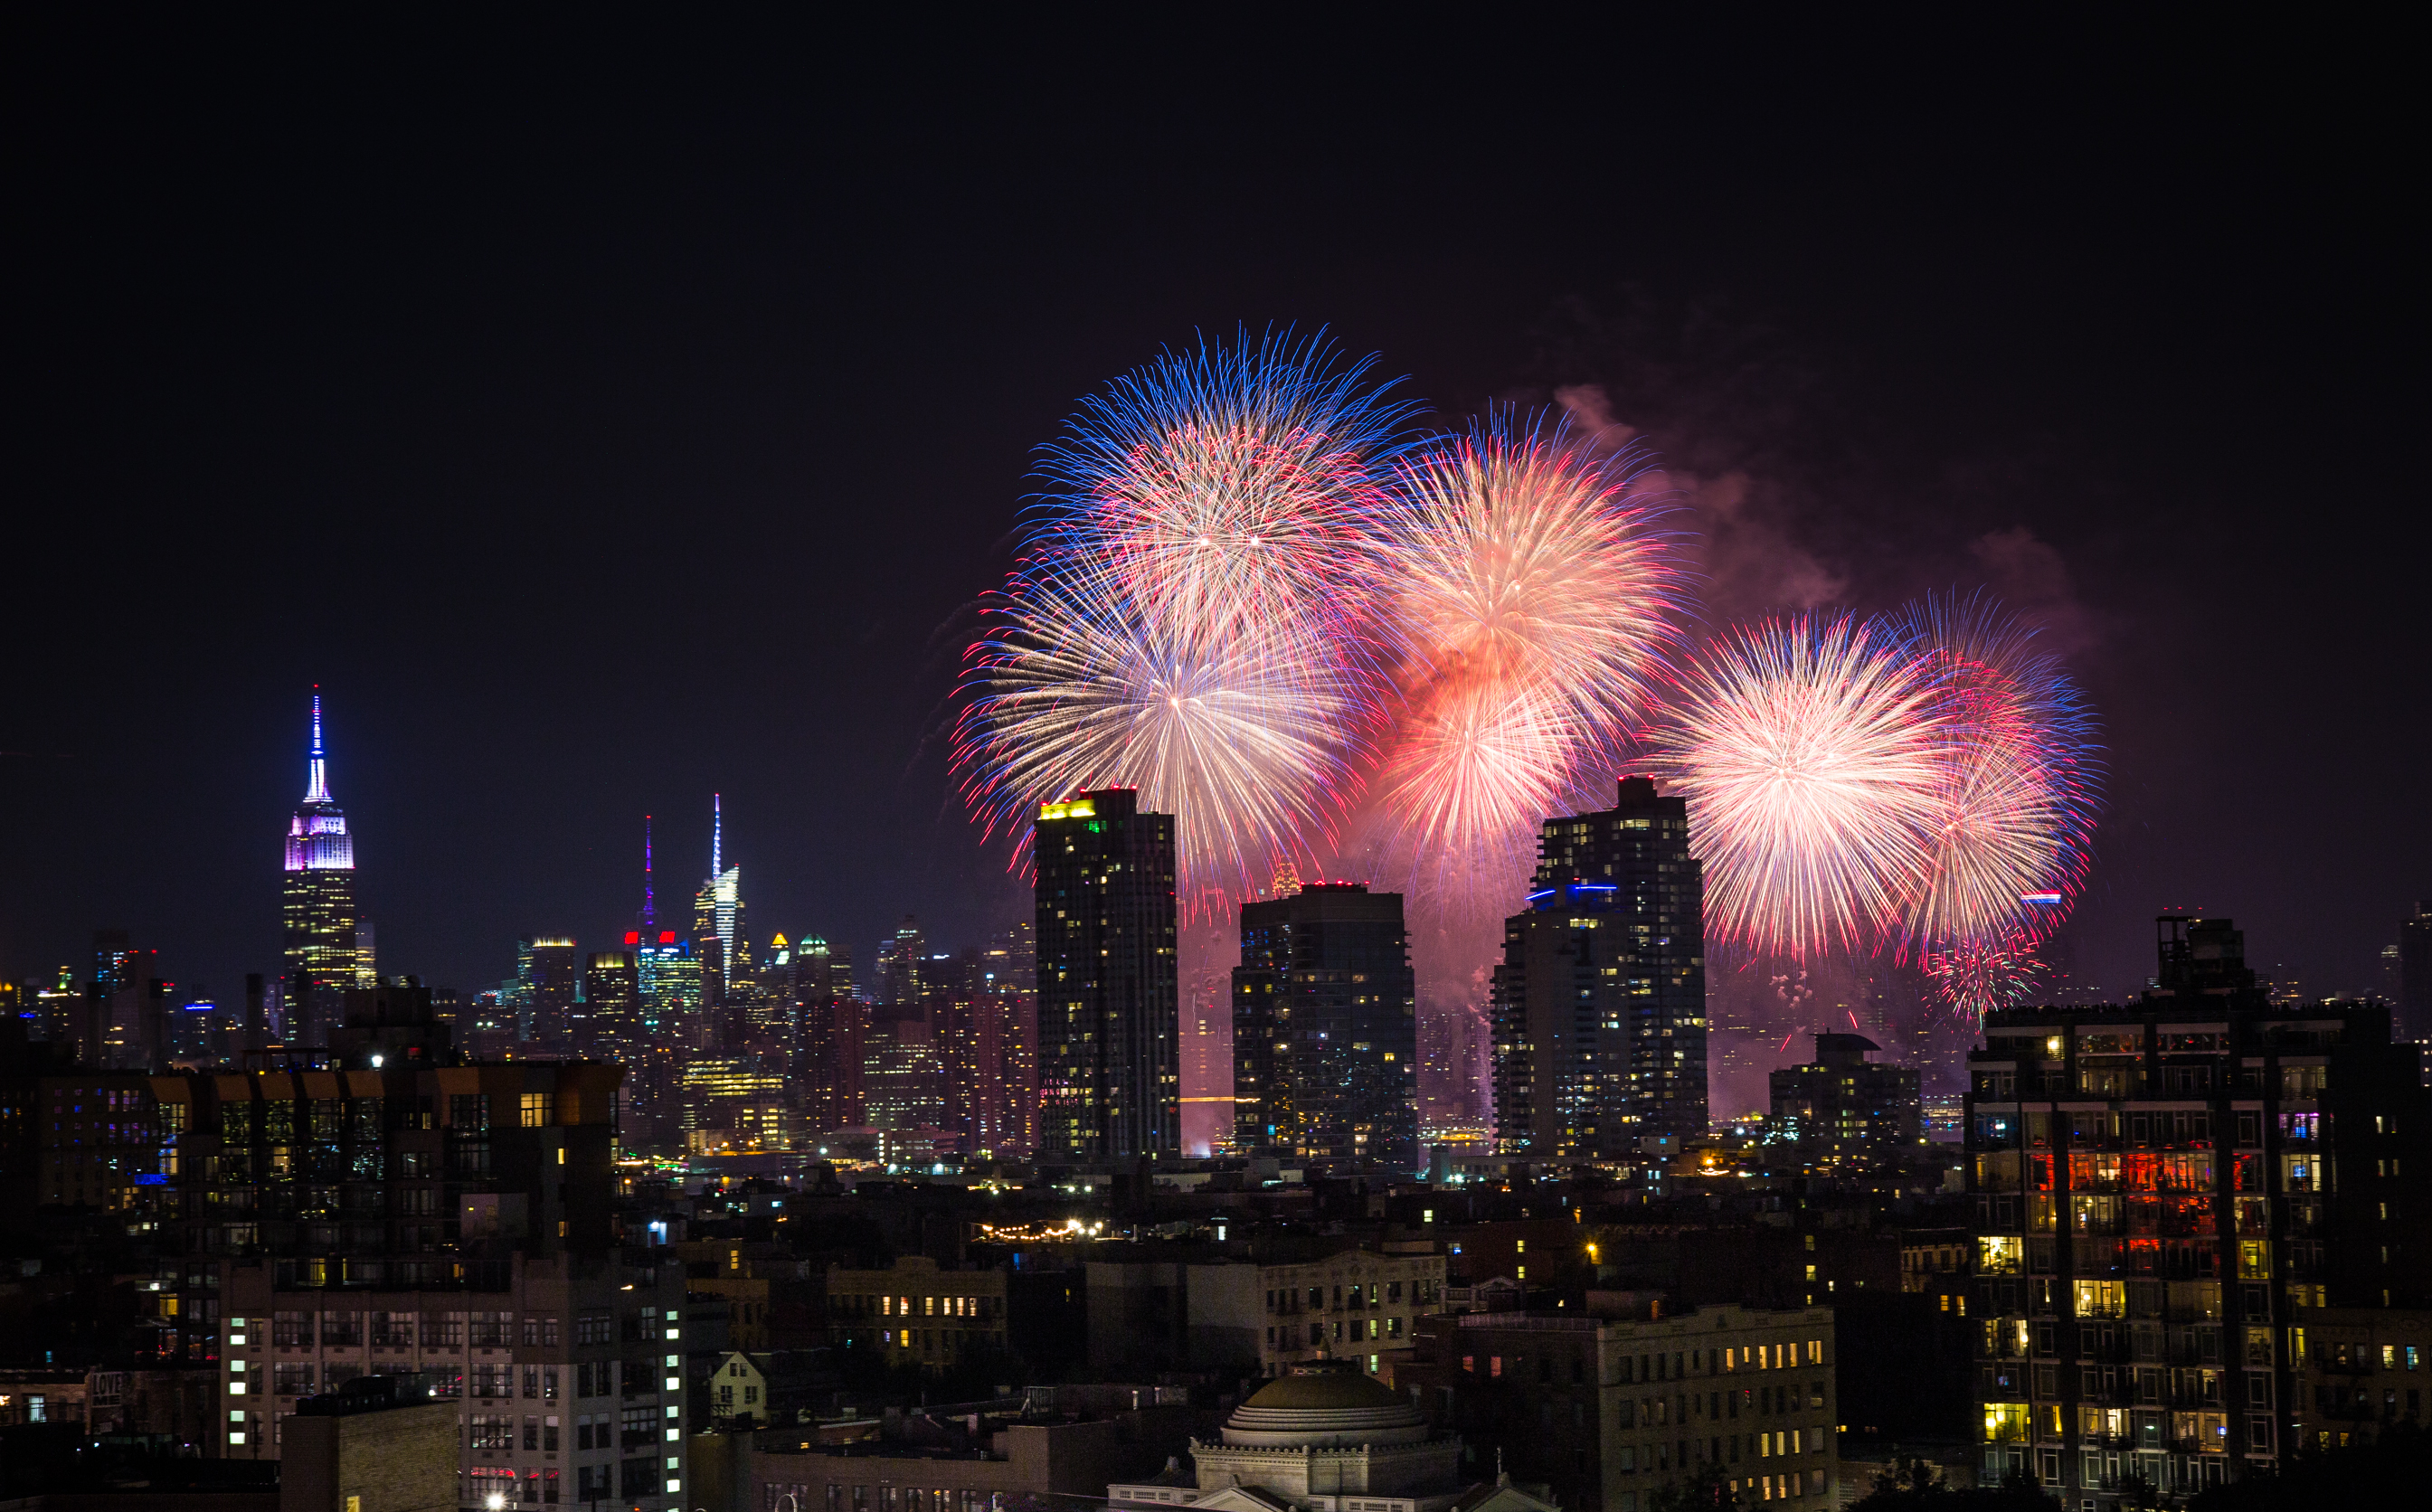 Colorful fireworks over the New York City skyline at night.